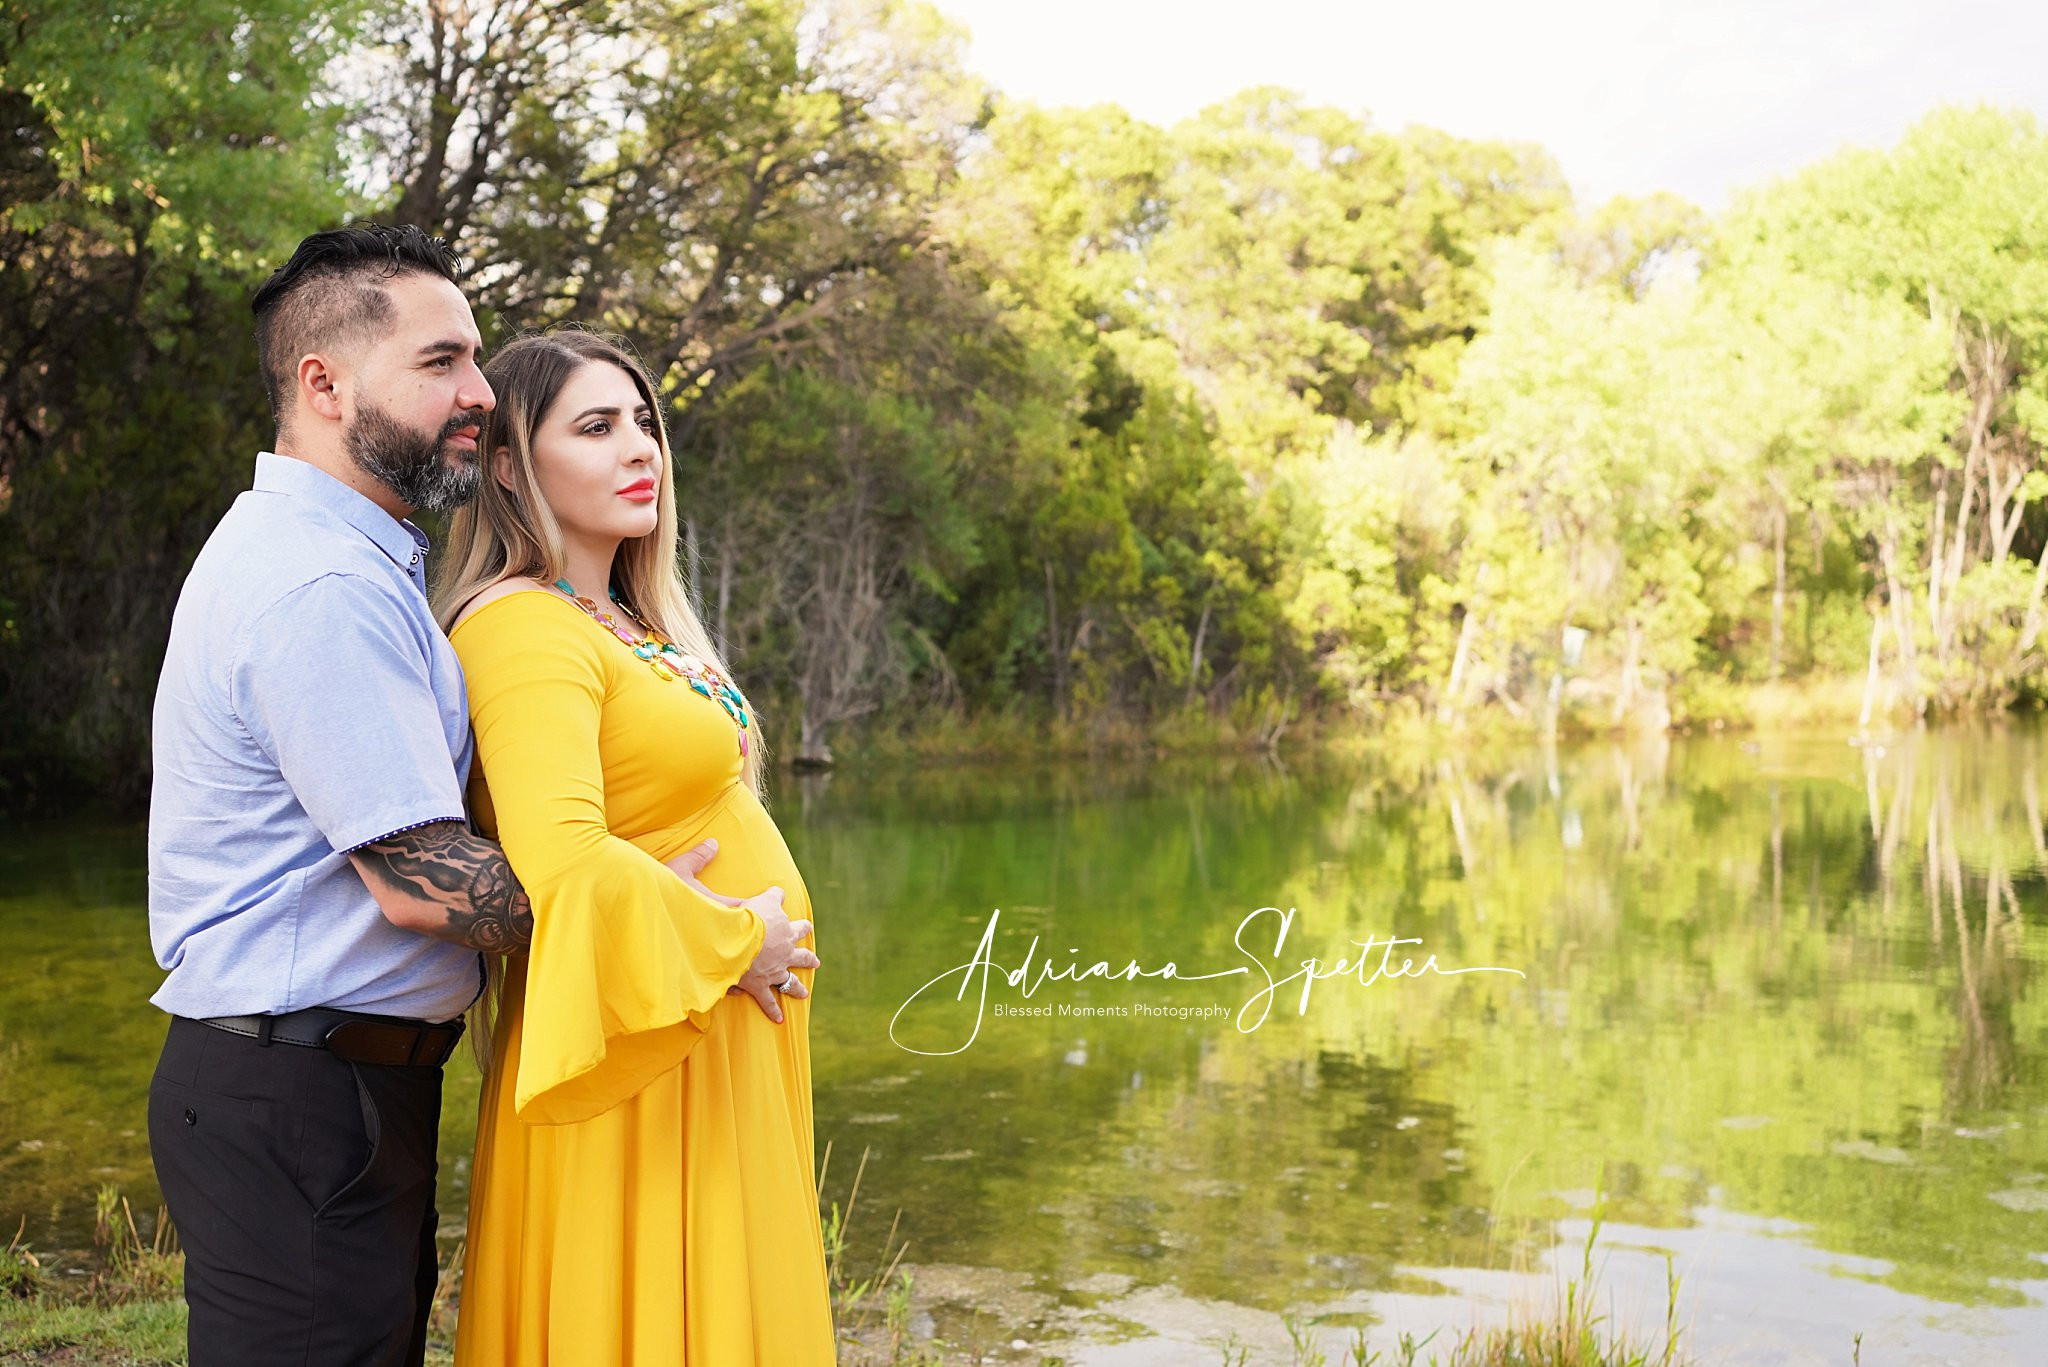 Maternity Deluxe Session